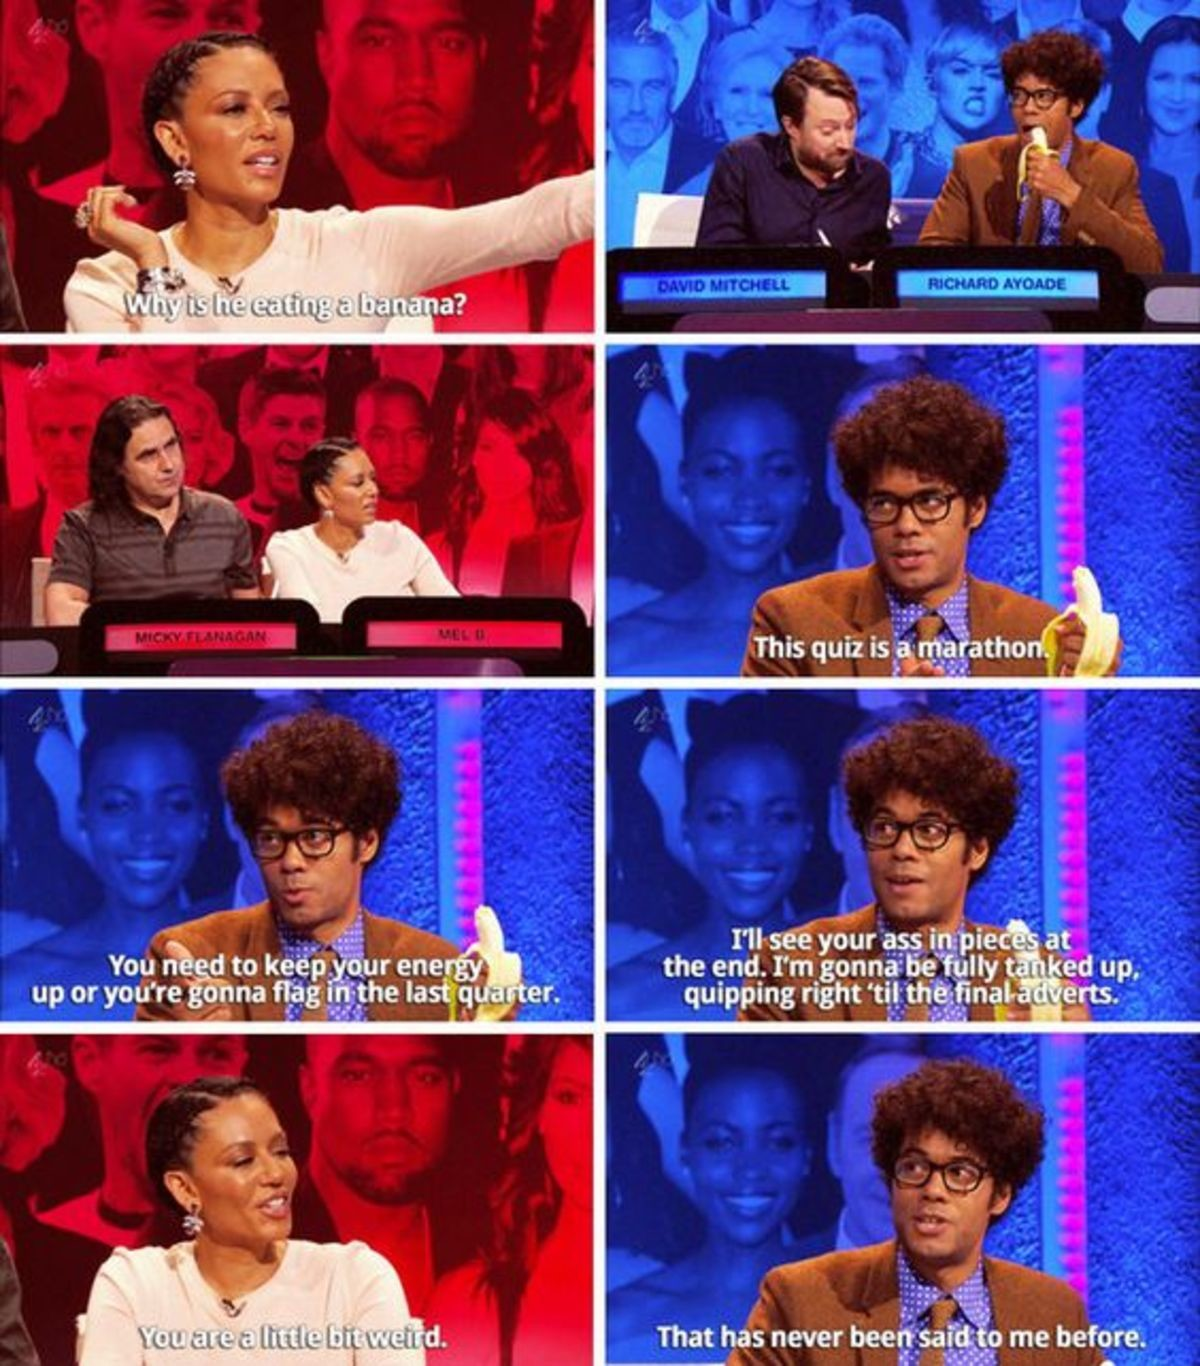 Richard Ayoade's Banana. Big fat quiz of the year... Is this the same episode where this woman was so bland and pointless that someone made an edit where they removed every interaction with her and photoshopped he